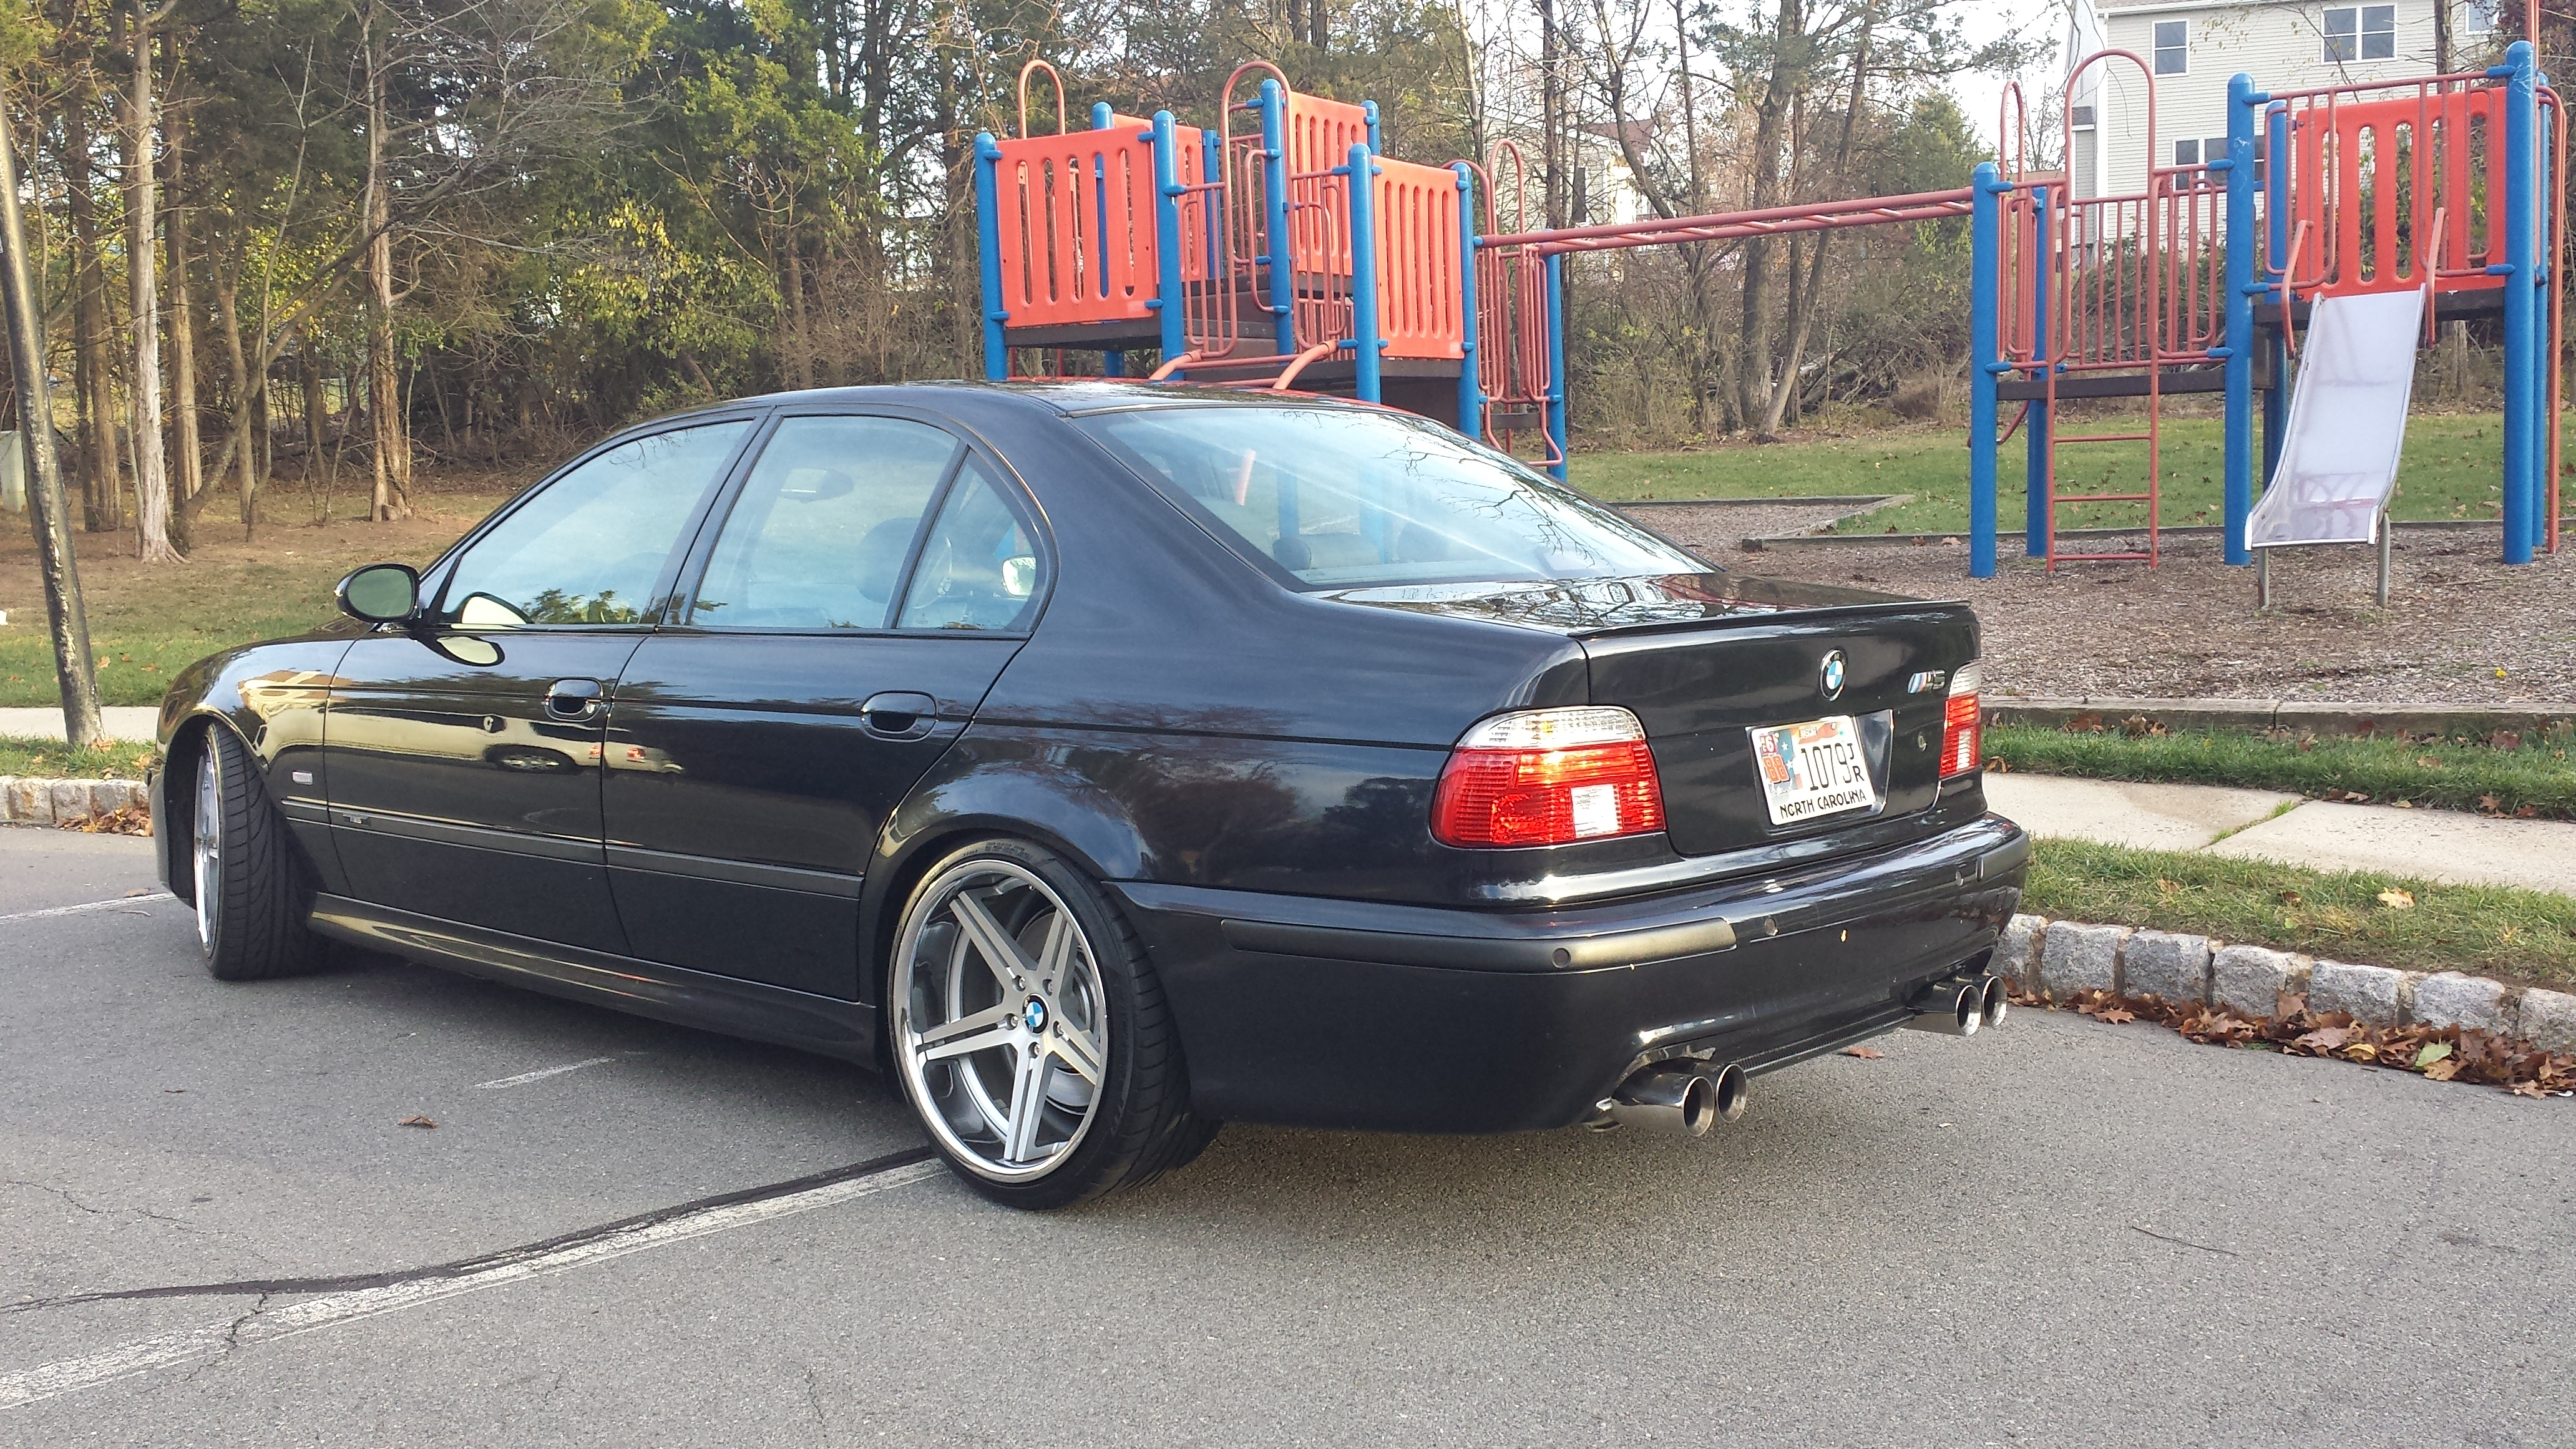 Owners - Post pictures of your cars here.-20131114_154733.jpg